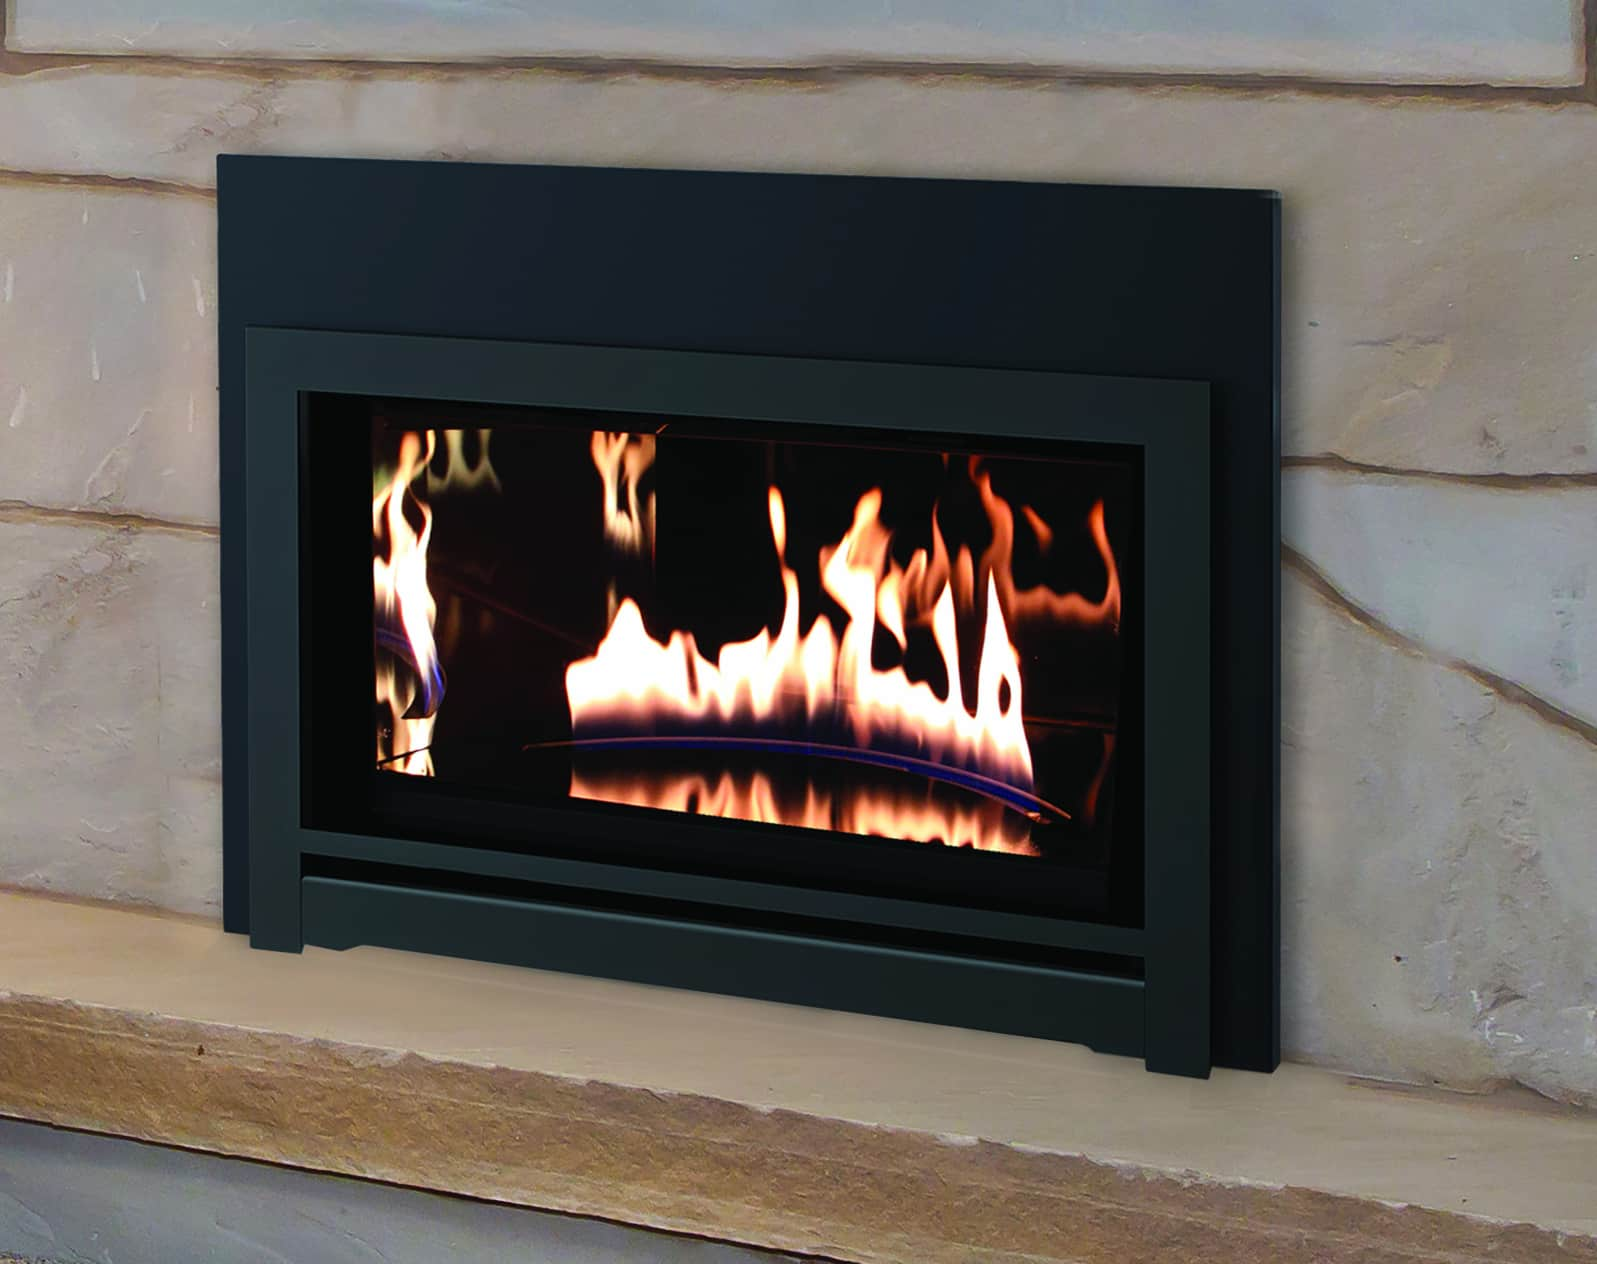 Gas Fireplace Faq Blaze King Industries Wood And Gas Stoves And Fireplaces